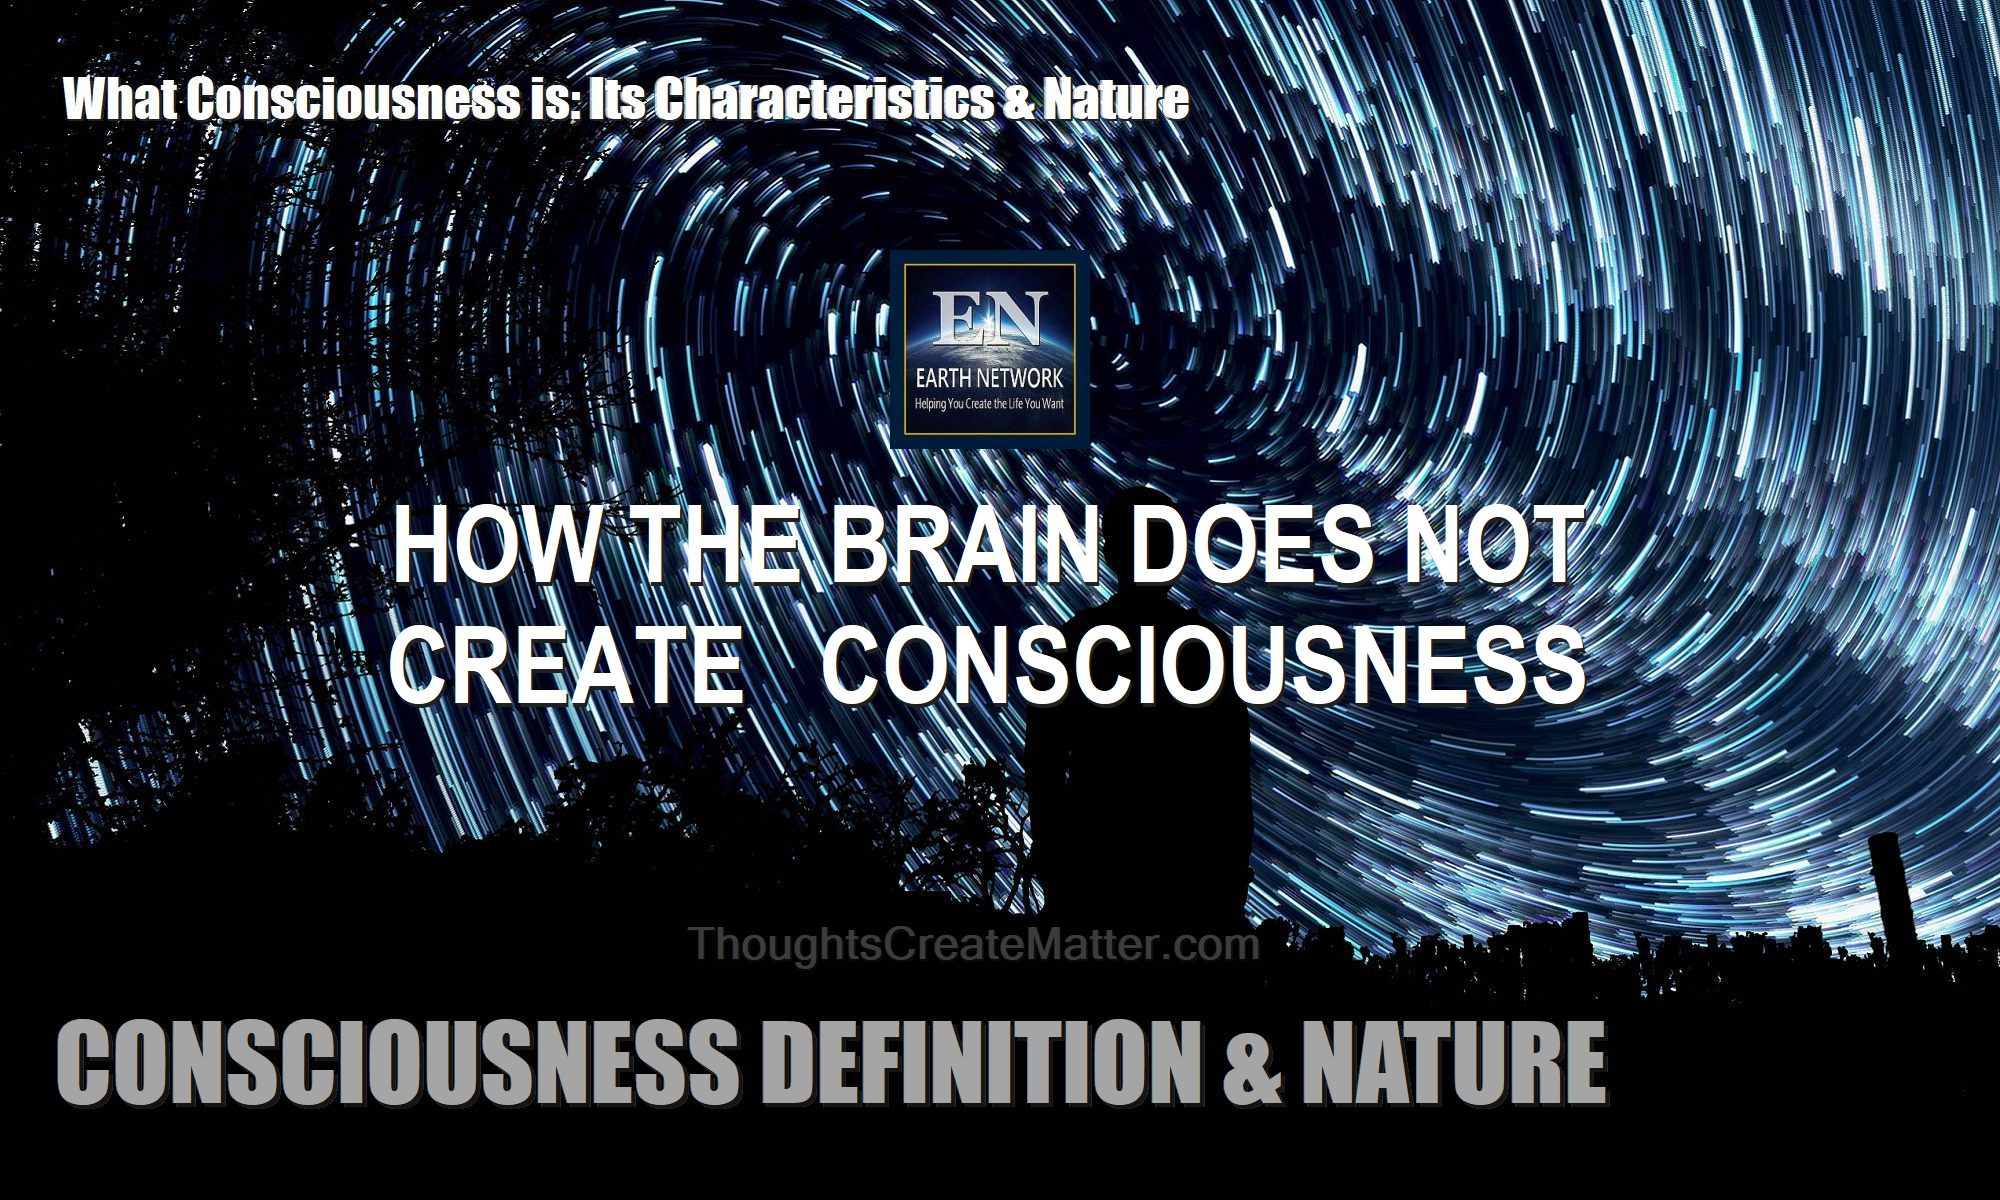 consciousness-definition-description-what-consciousness-is-its-characteristics-nature